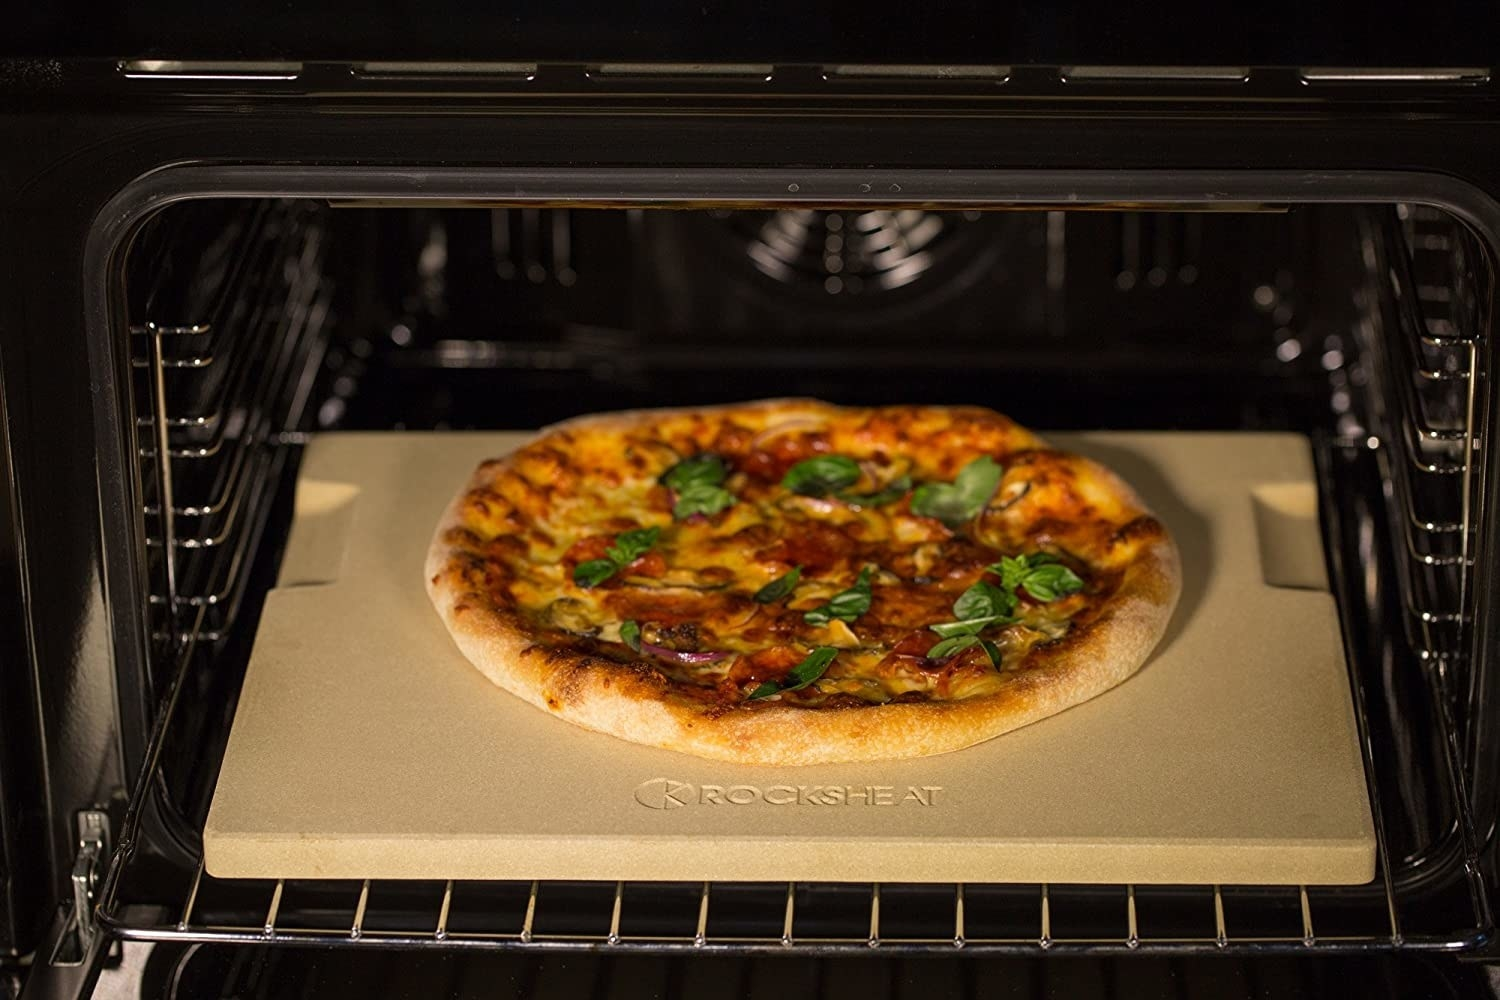 A homemade pizza cooking on the pizza stone in an oven